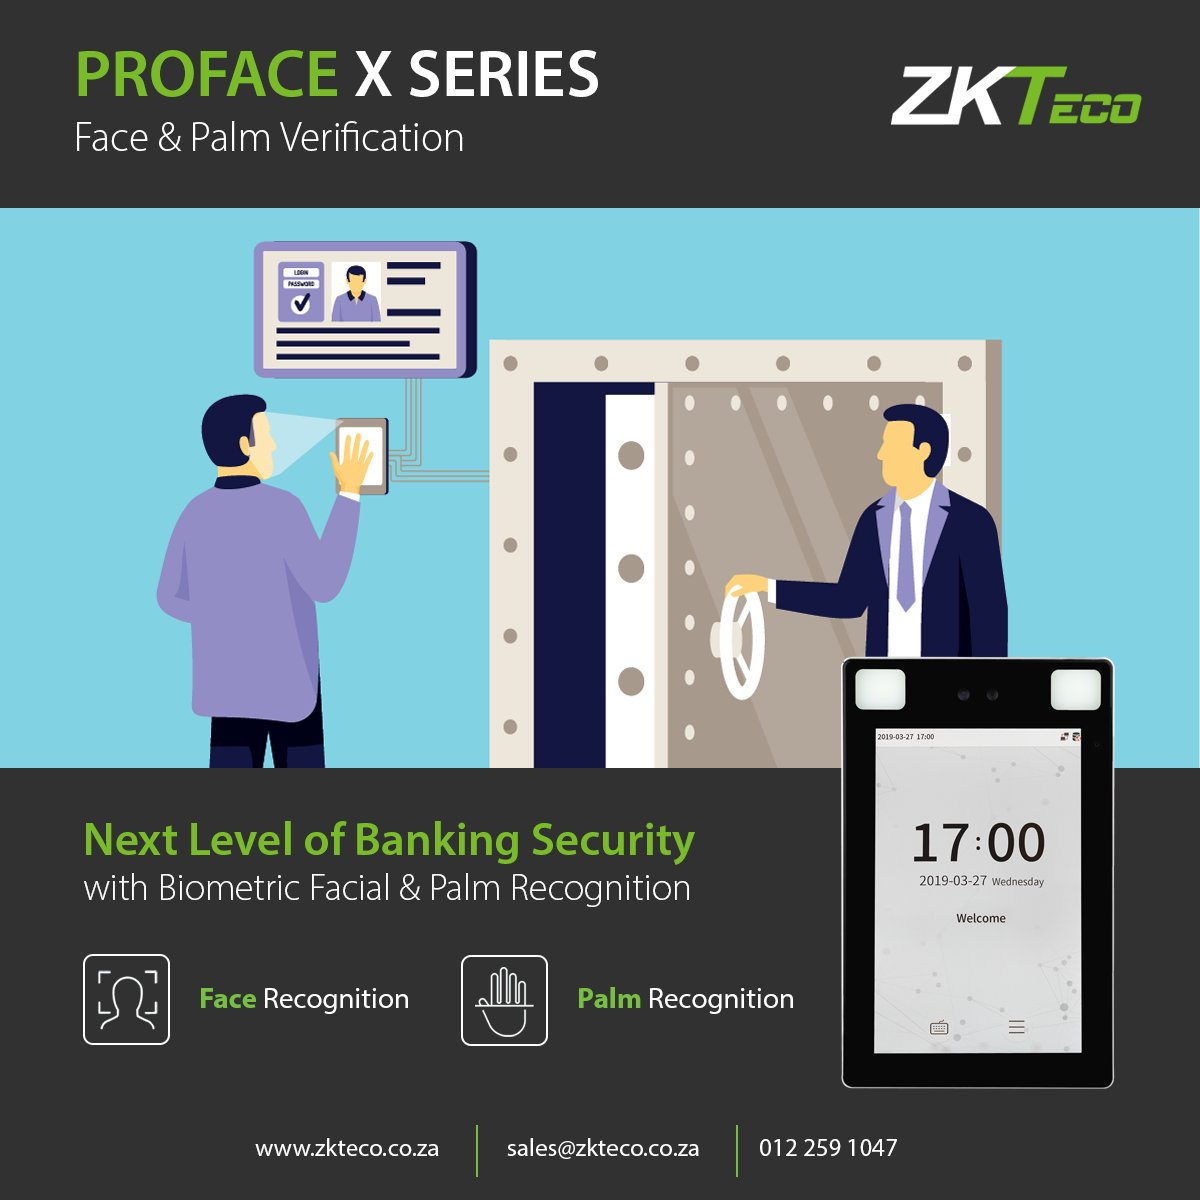 Are you ready to upgrade your #AccessControl solutions?   Optimise safety and security within high restricted areas with our newly released Visible Light #FacialRecognition Access Control terminals.   Get to know more about this incredible Technology:  https://zcu.io/pUJSpic.twitter.com/QzfCU85c8m